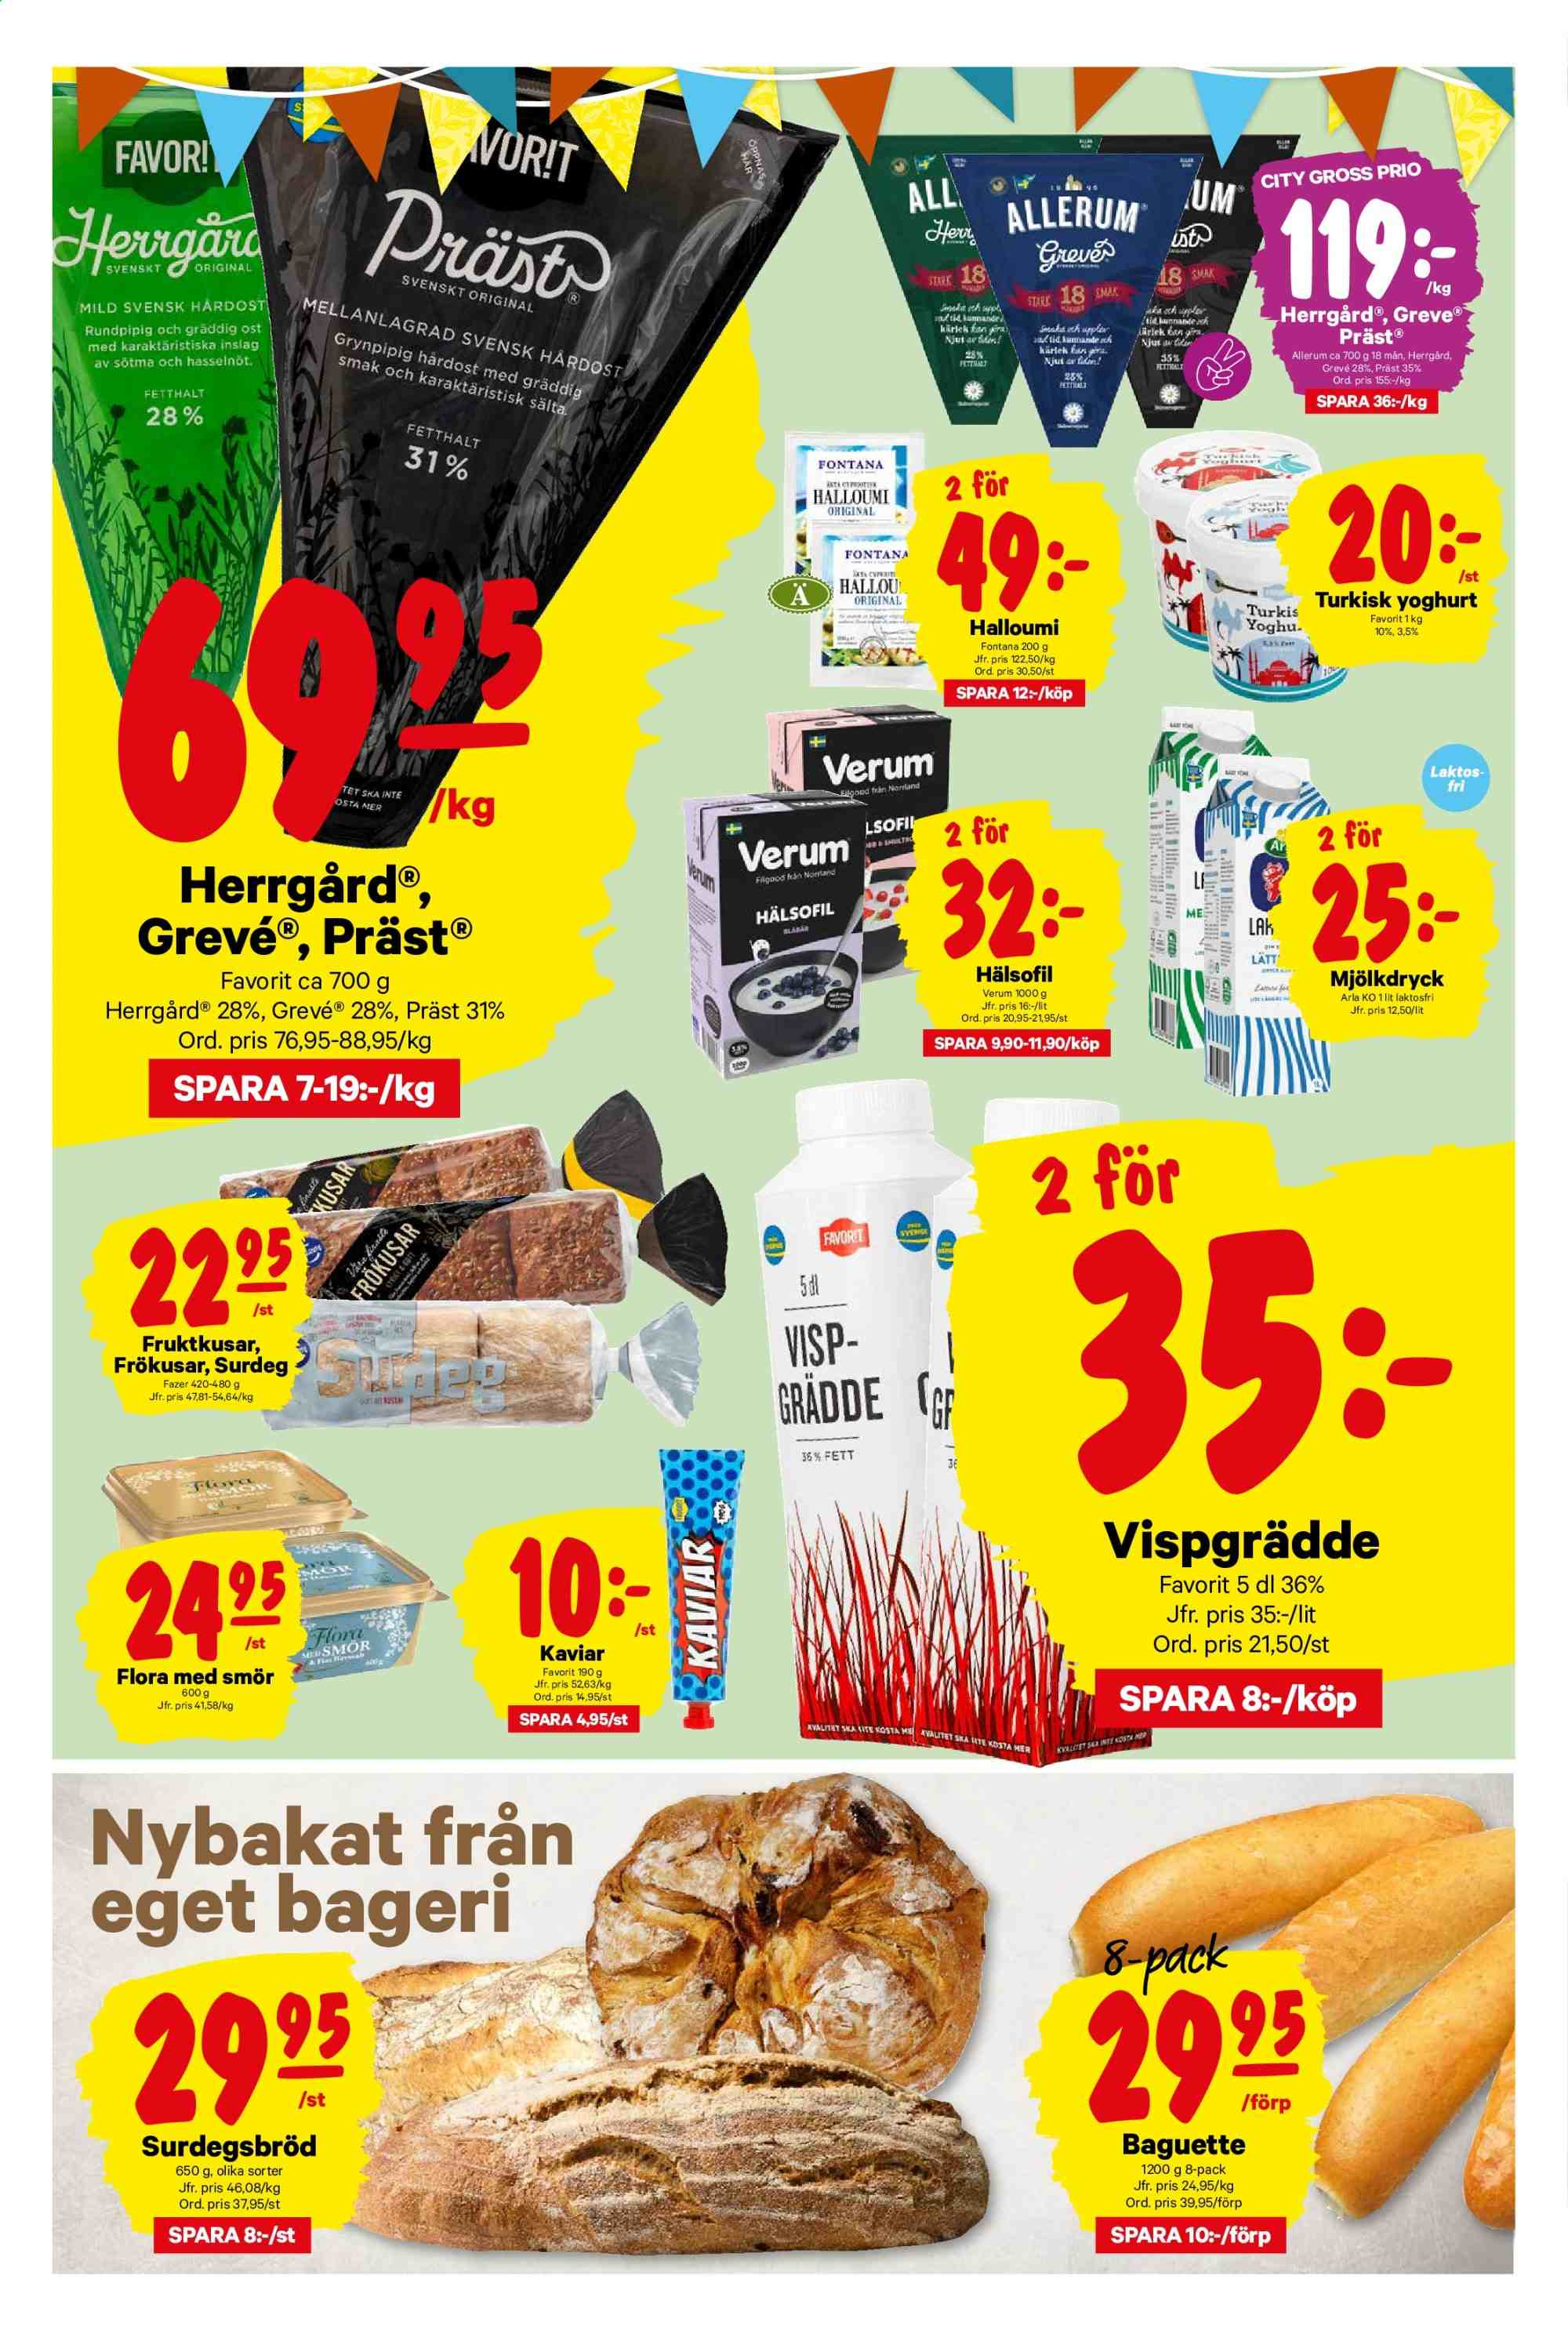 City Gross reklamblad - 15/7 2019 - 21/7 2019. Sida 5.